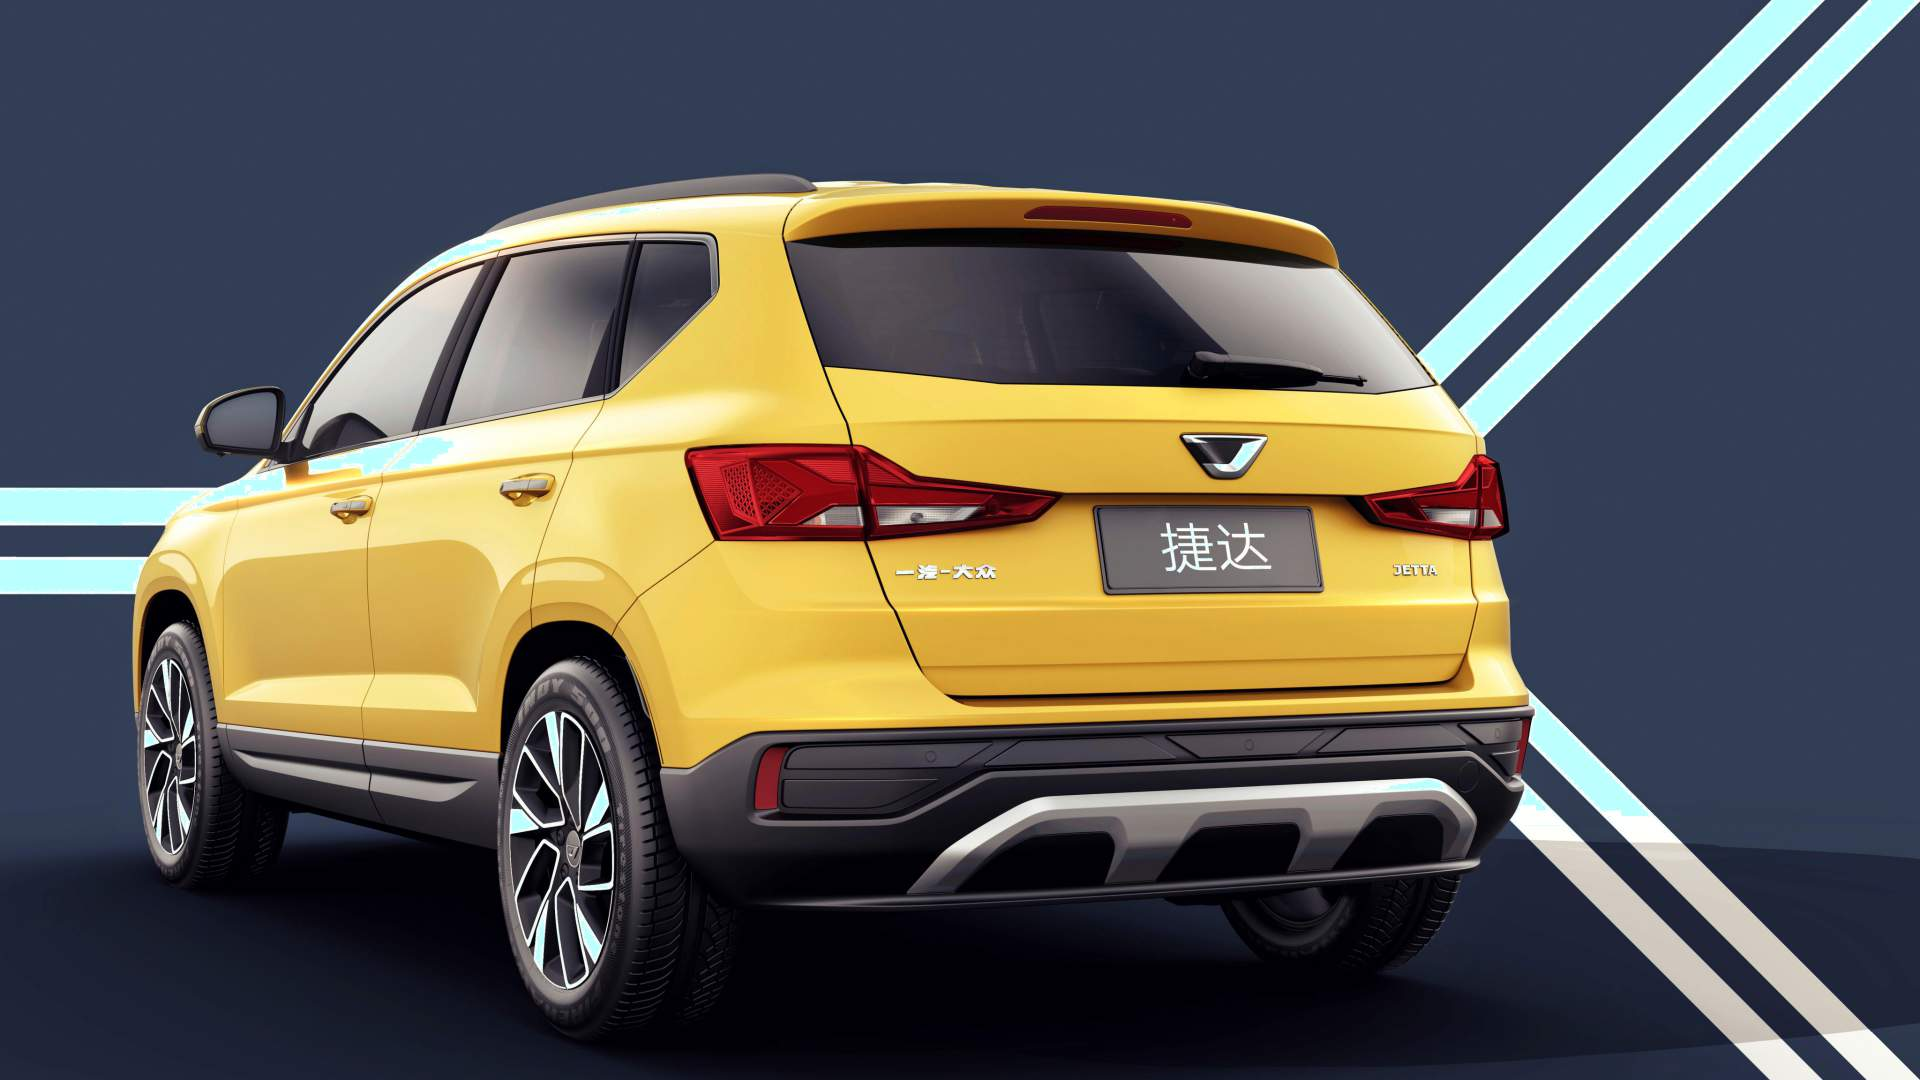 Jetta VS5 Compact Crossover render rear